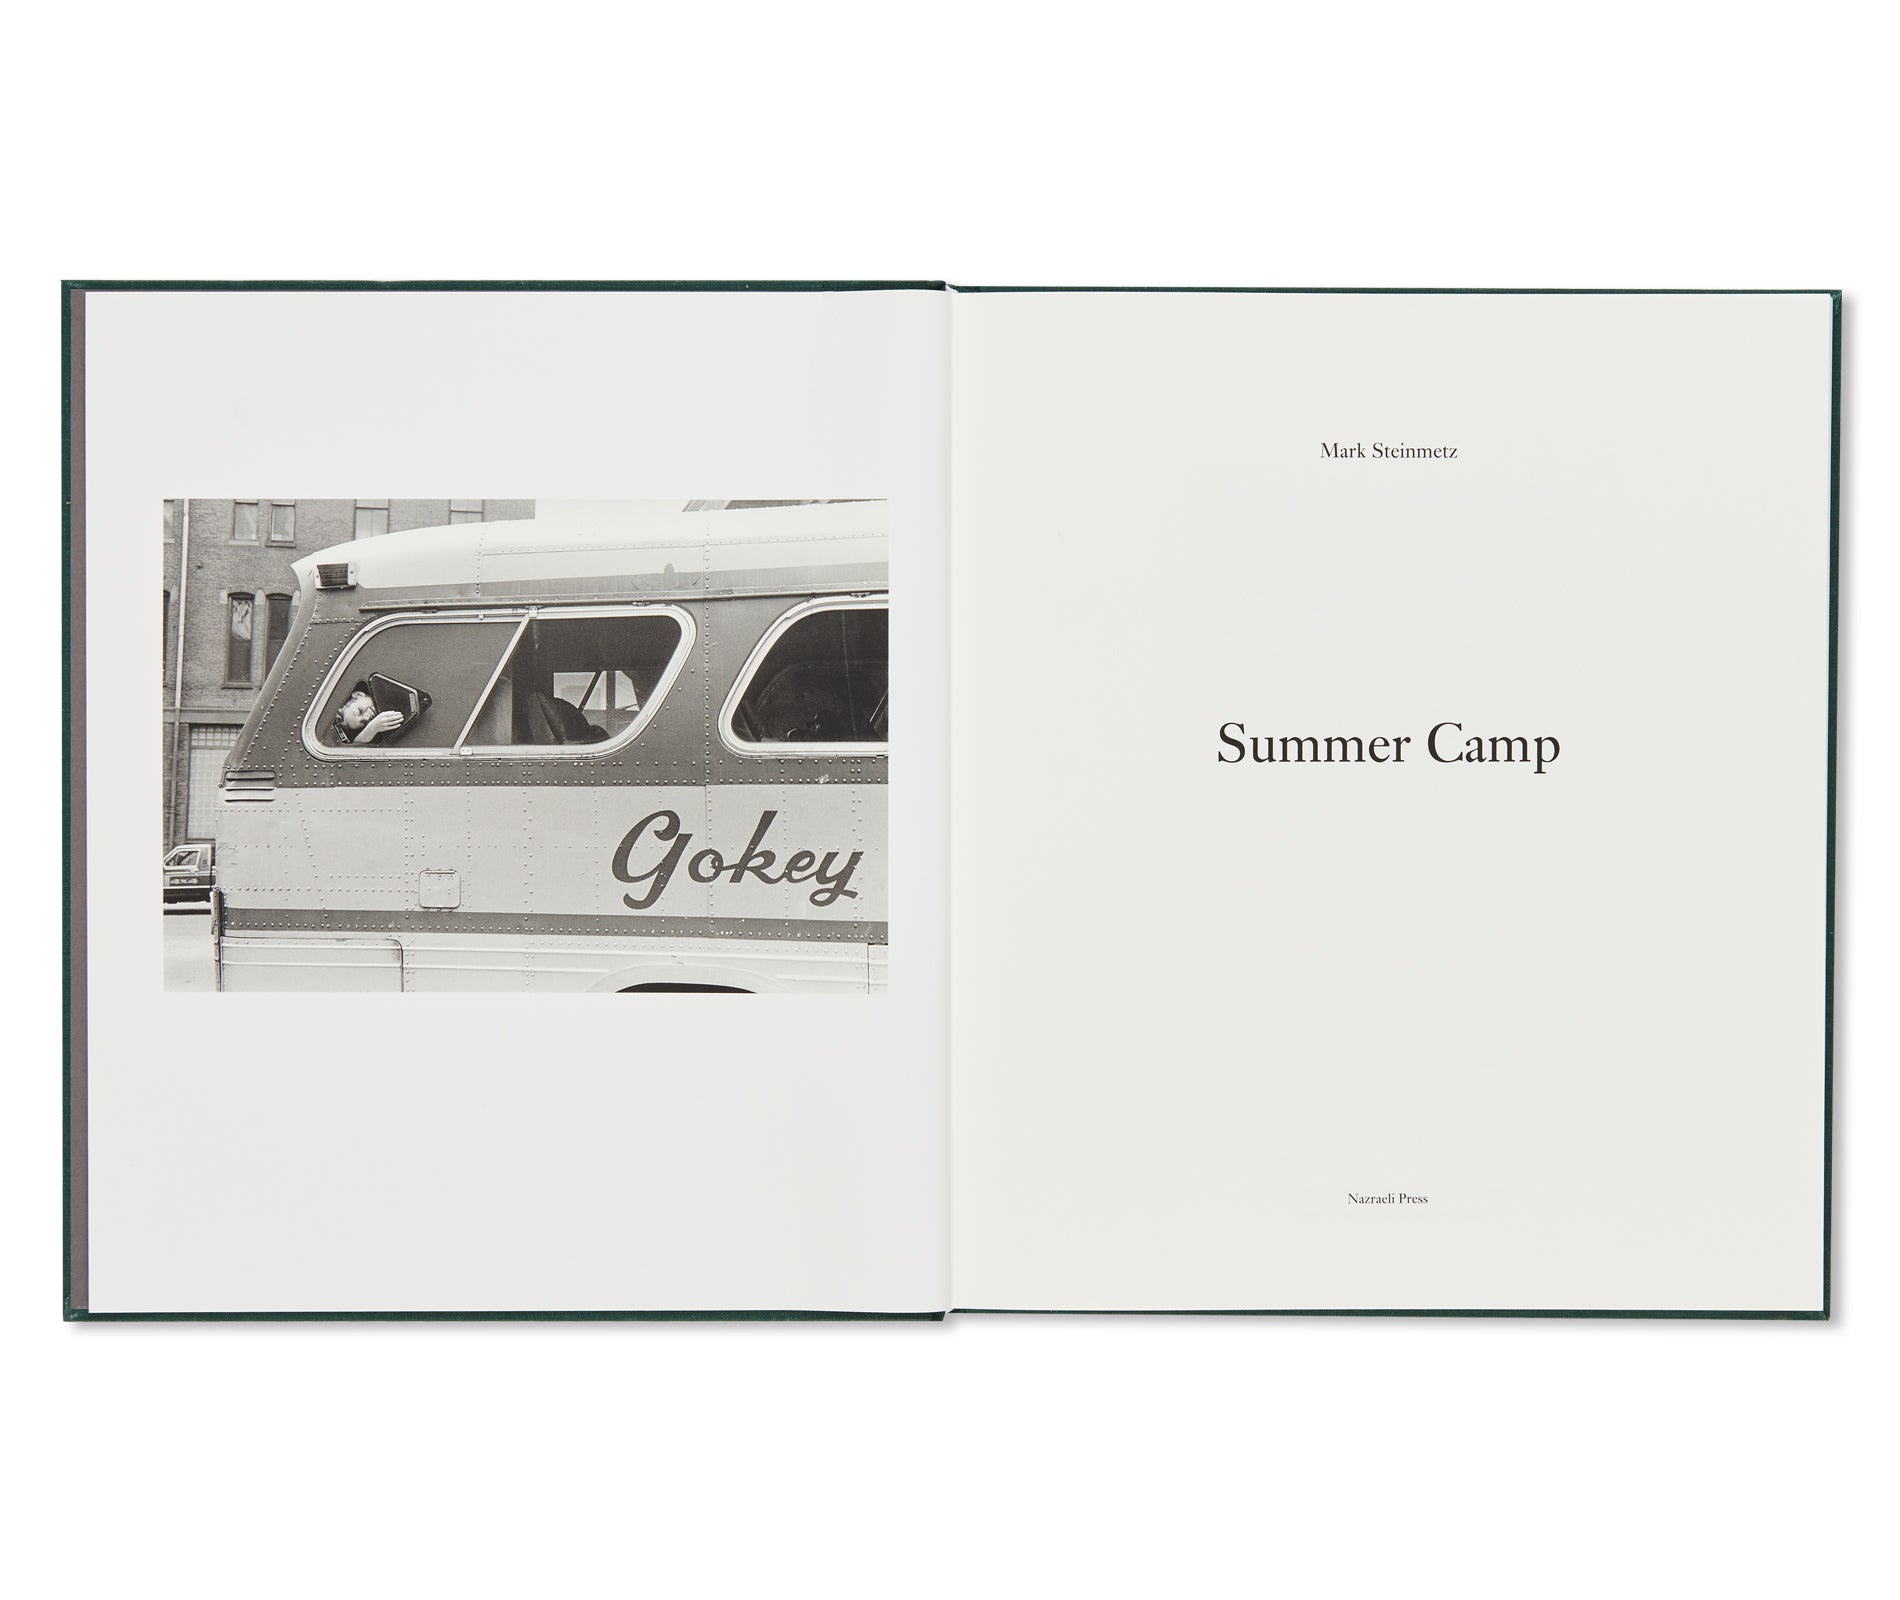 SUMMER CAMP by Mark Steinmetz